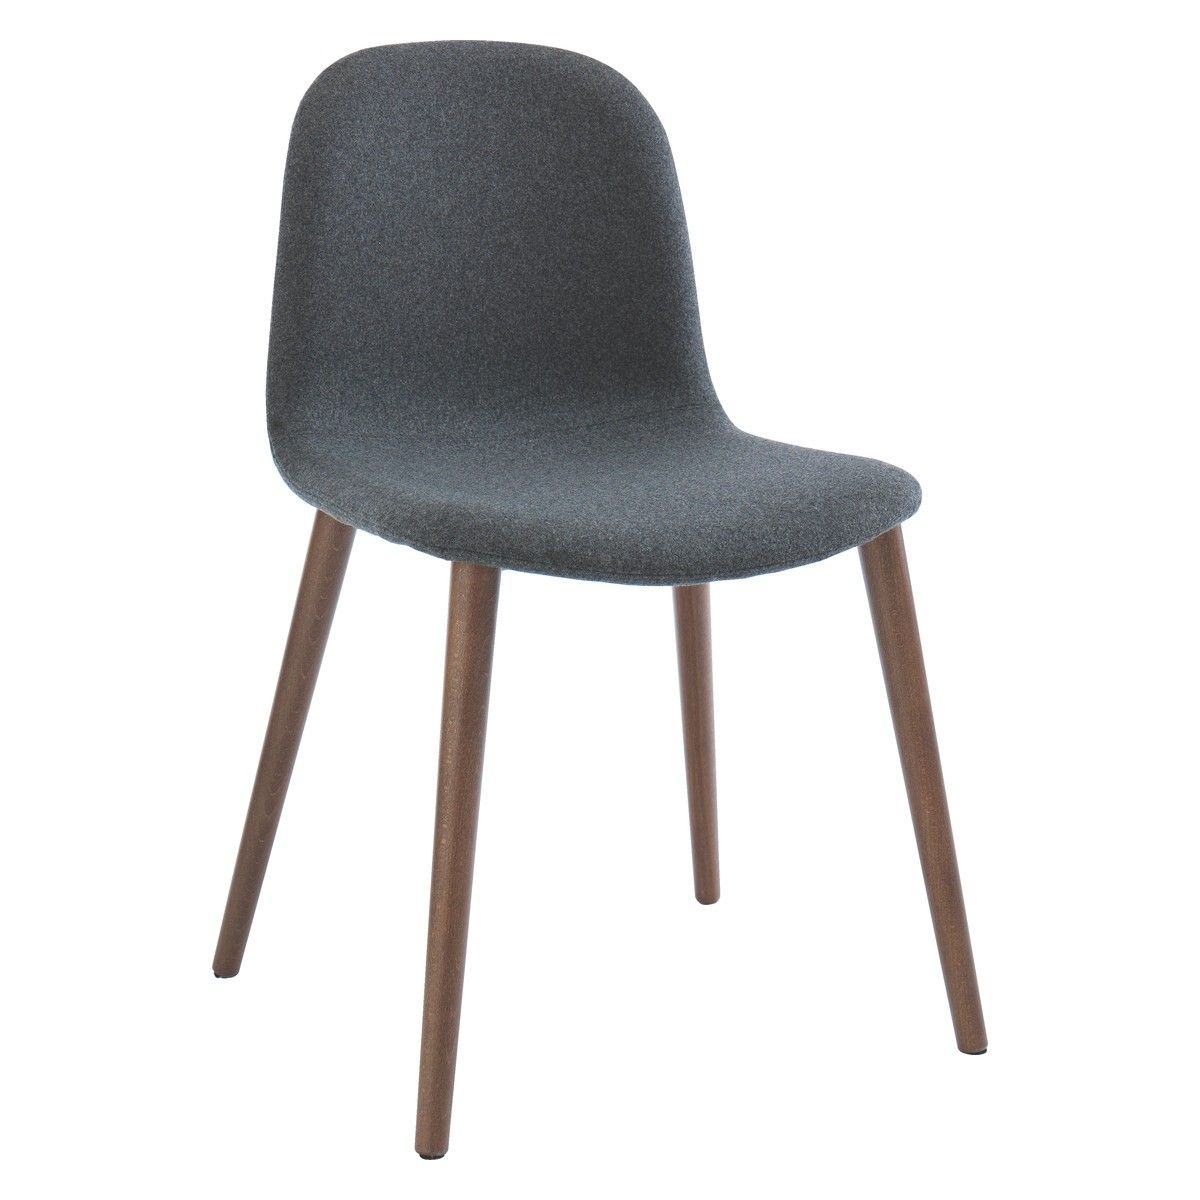 bacco grey upholstered dining chair | grey upholstered dining